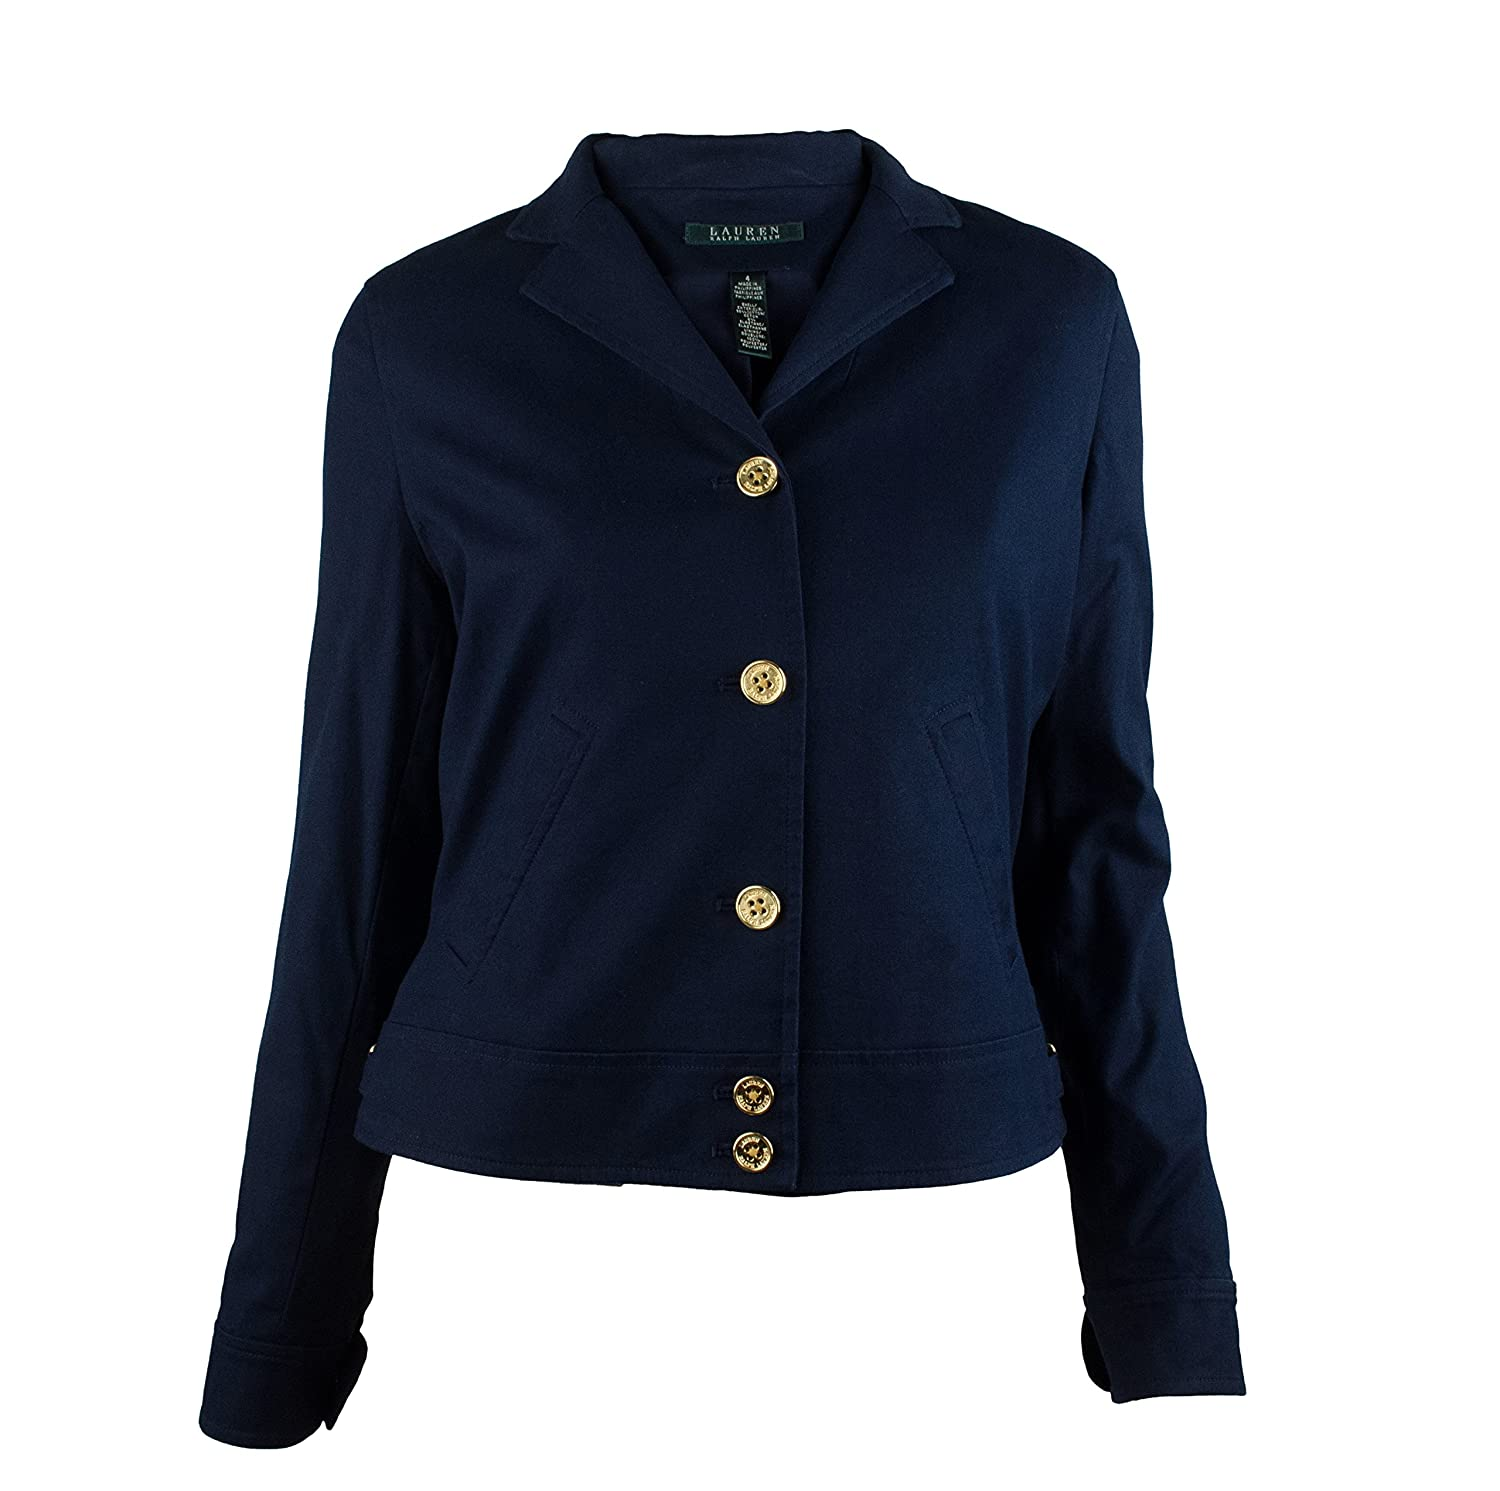 Lauren Ralph Lauren 5-Button Cotton Blazer (Capri Navy) ralph lauren girls cotton neon sweatshirt pullover top